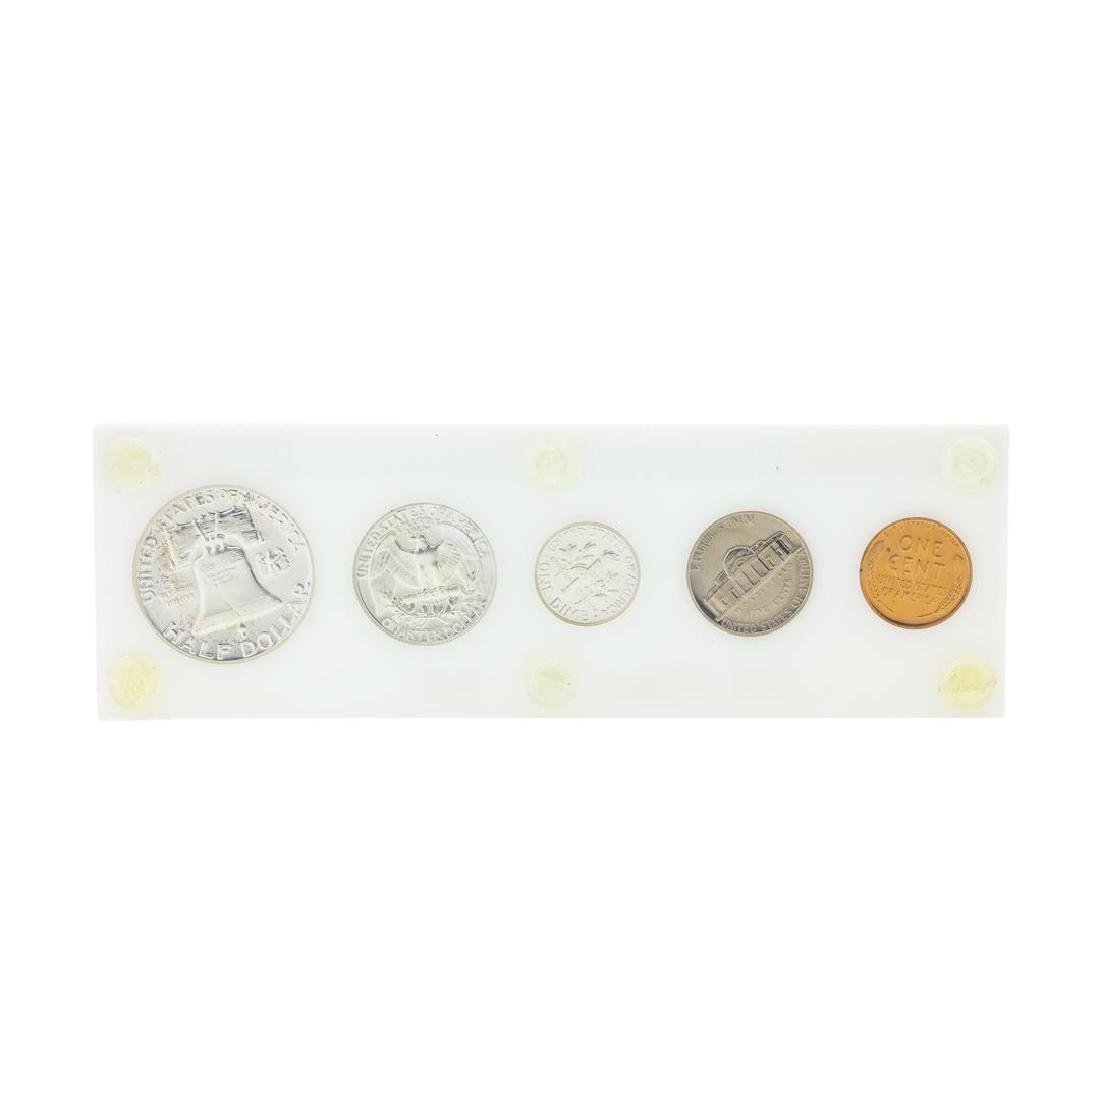 1955 (5) Coin Proof Set - 2